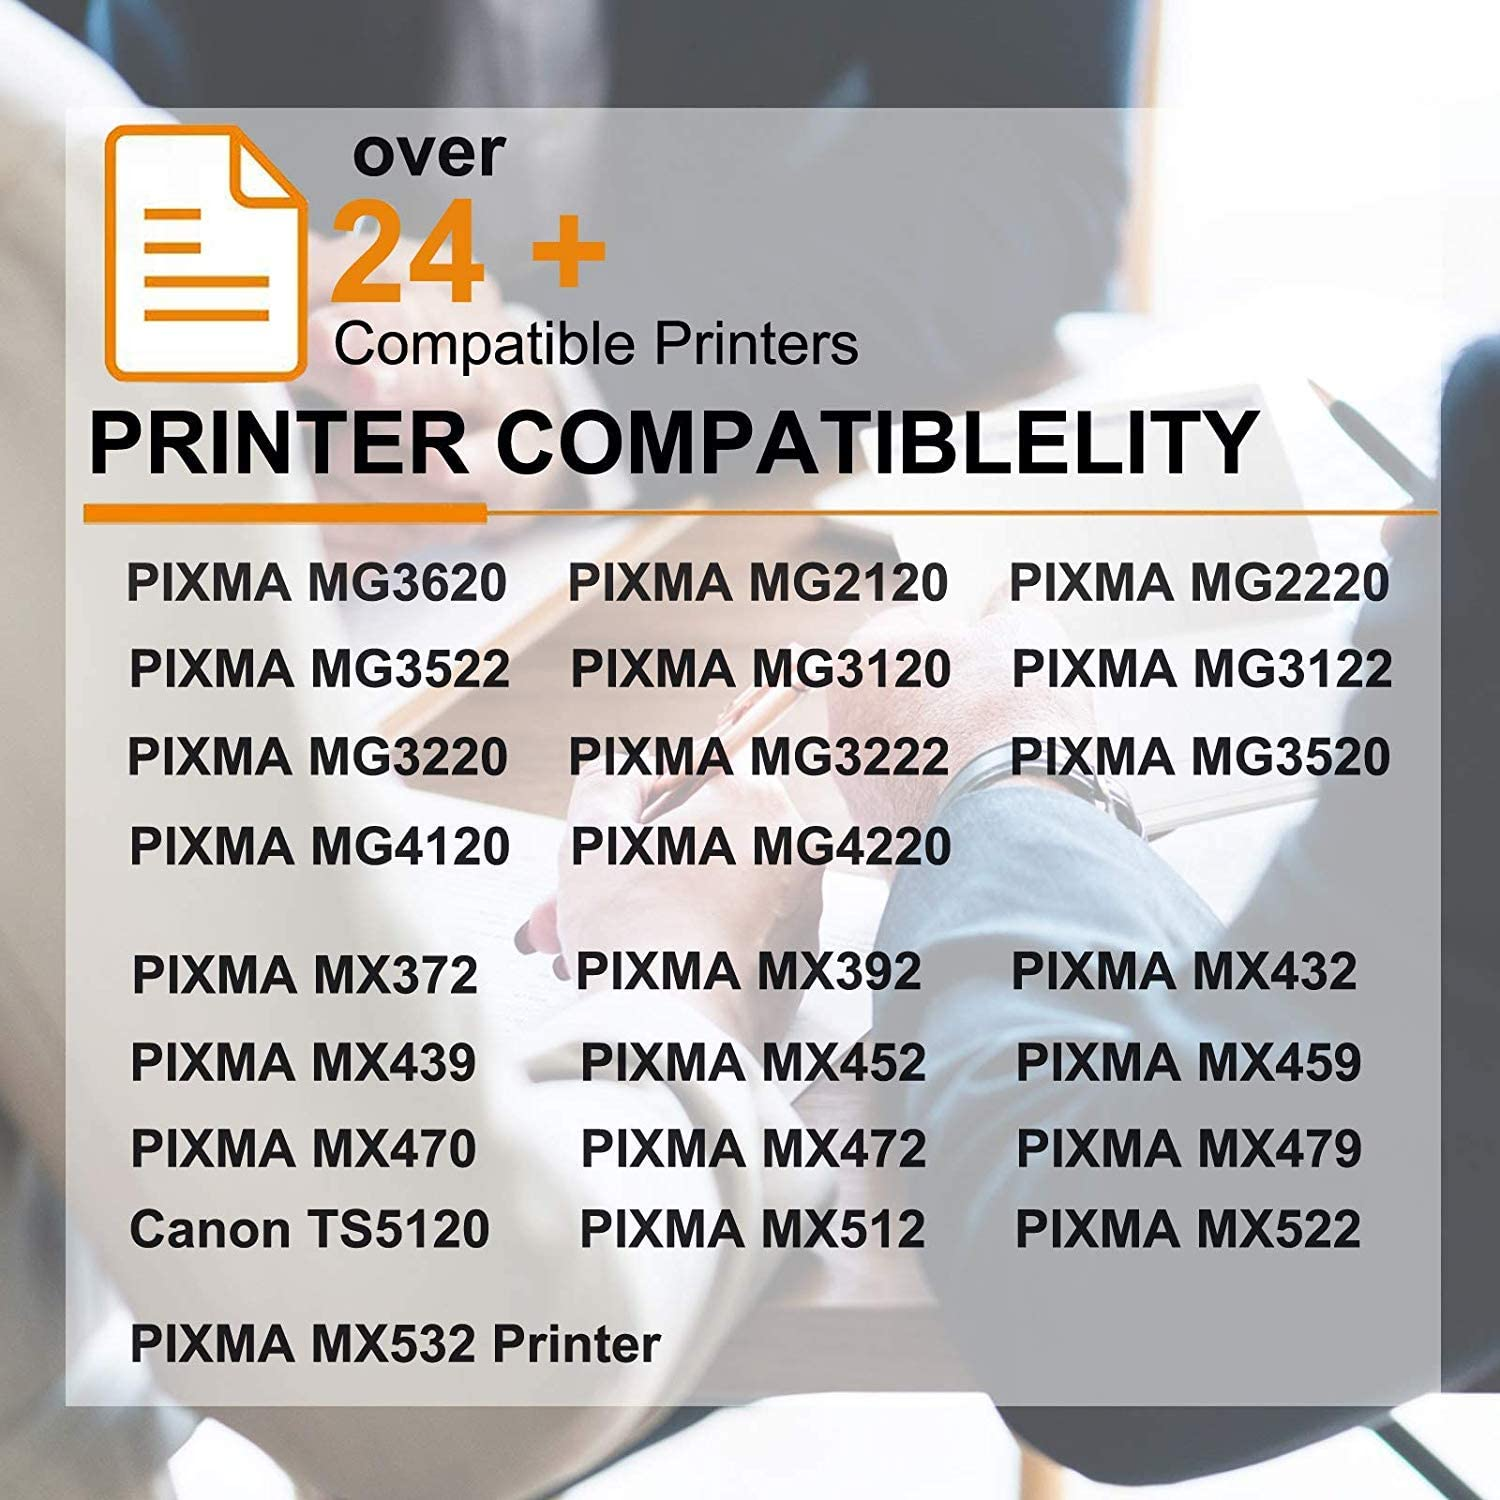 GREENCYCLE Remanufactured PG-240XL 240 XL CL-241XL 241 XL Ink Cartridge Compatible for Canon PIXMA MG4220 MG3220 MG2220 MX392 MX432 MX452 MX472 MX512 MG3522 Black, 3 Pack ; Tri-Color, 1 Pack